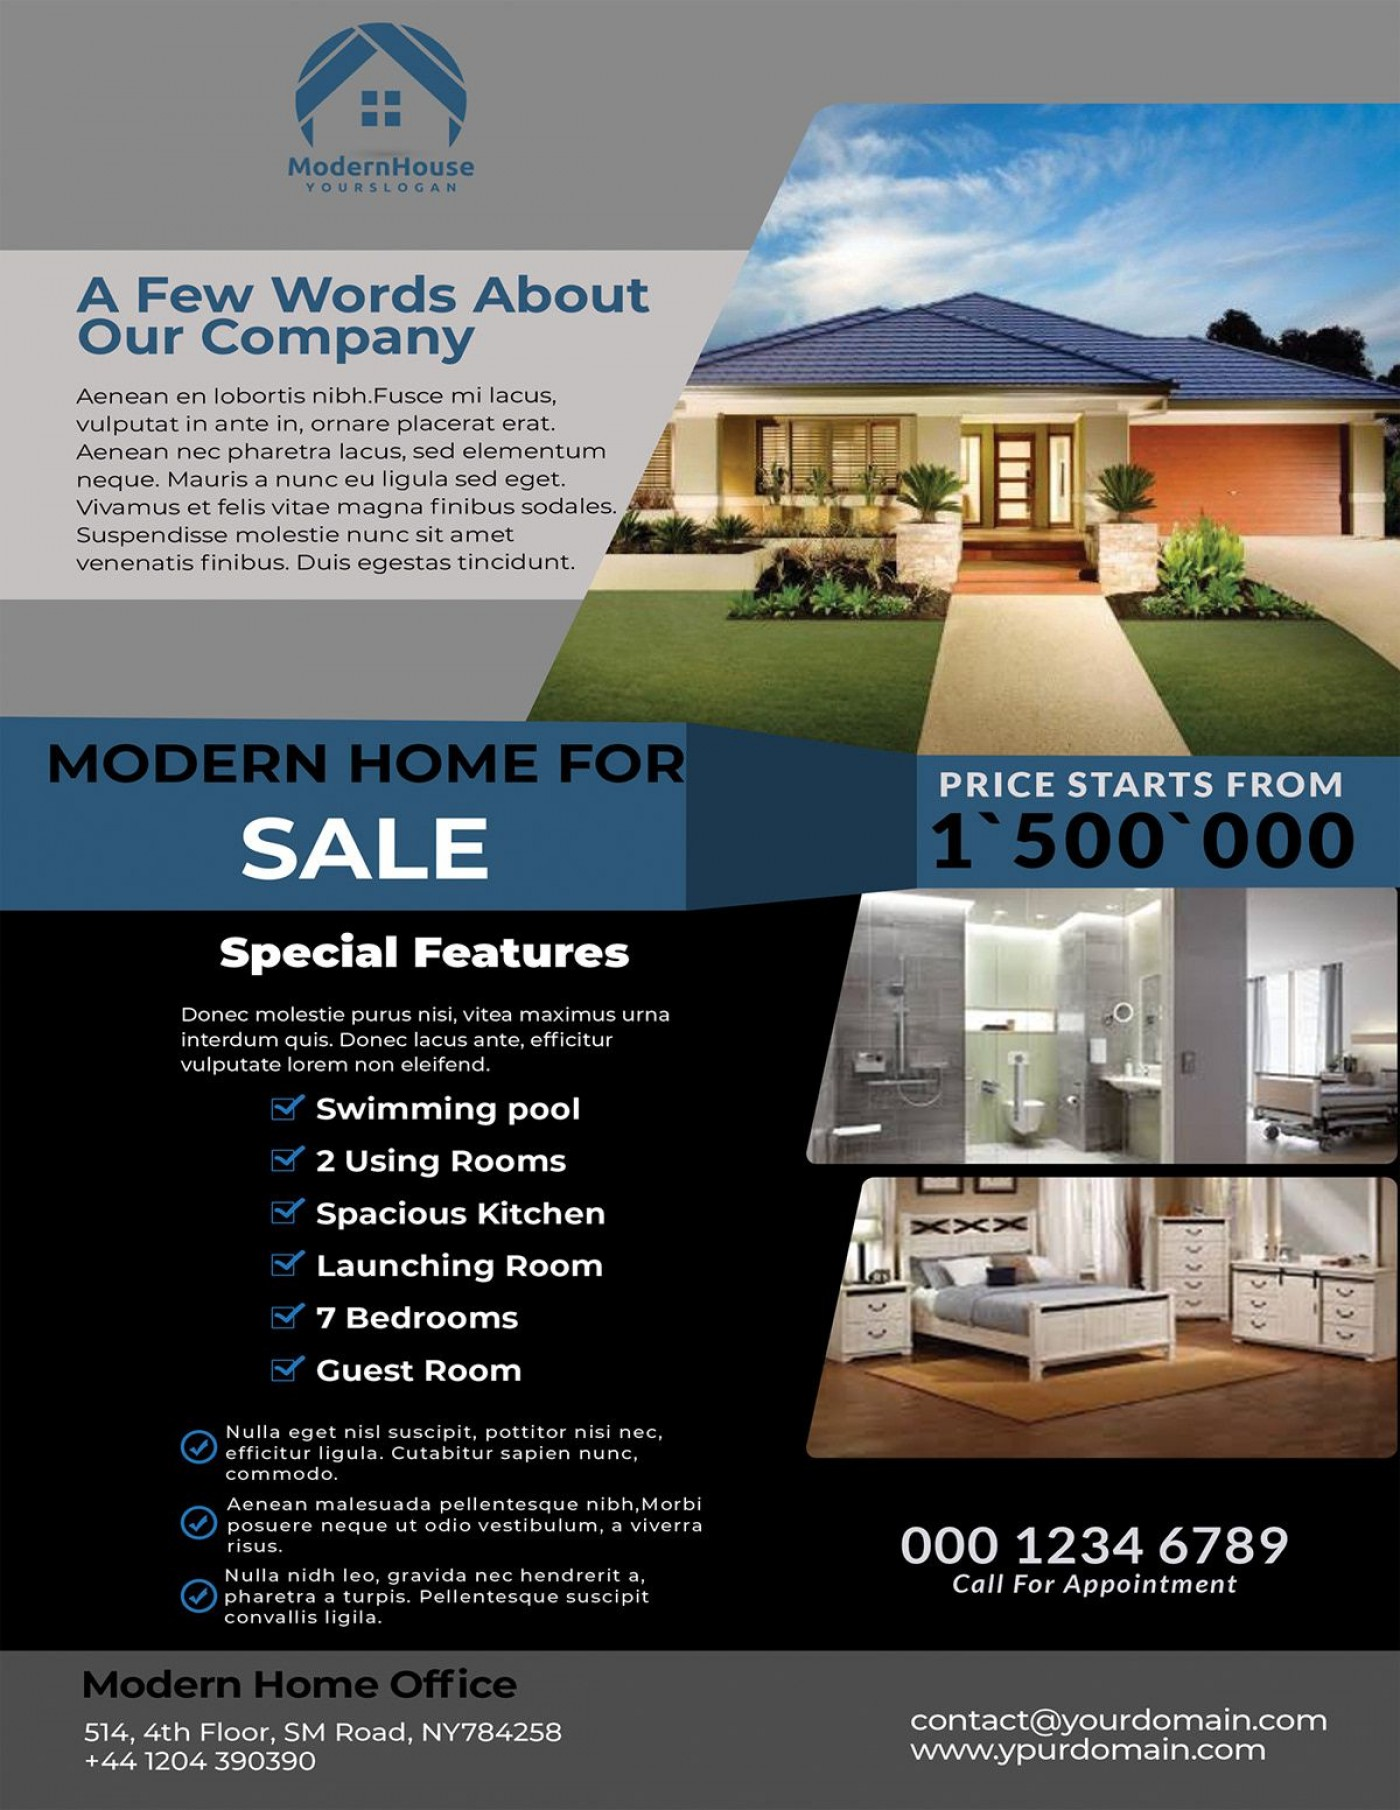 000 Fascinating House For Sale Flyer Template Photo  Free Real Estate Example By Owner1400